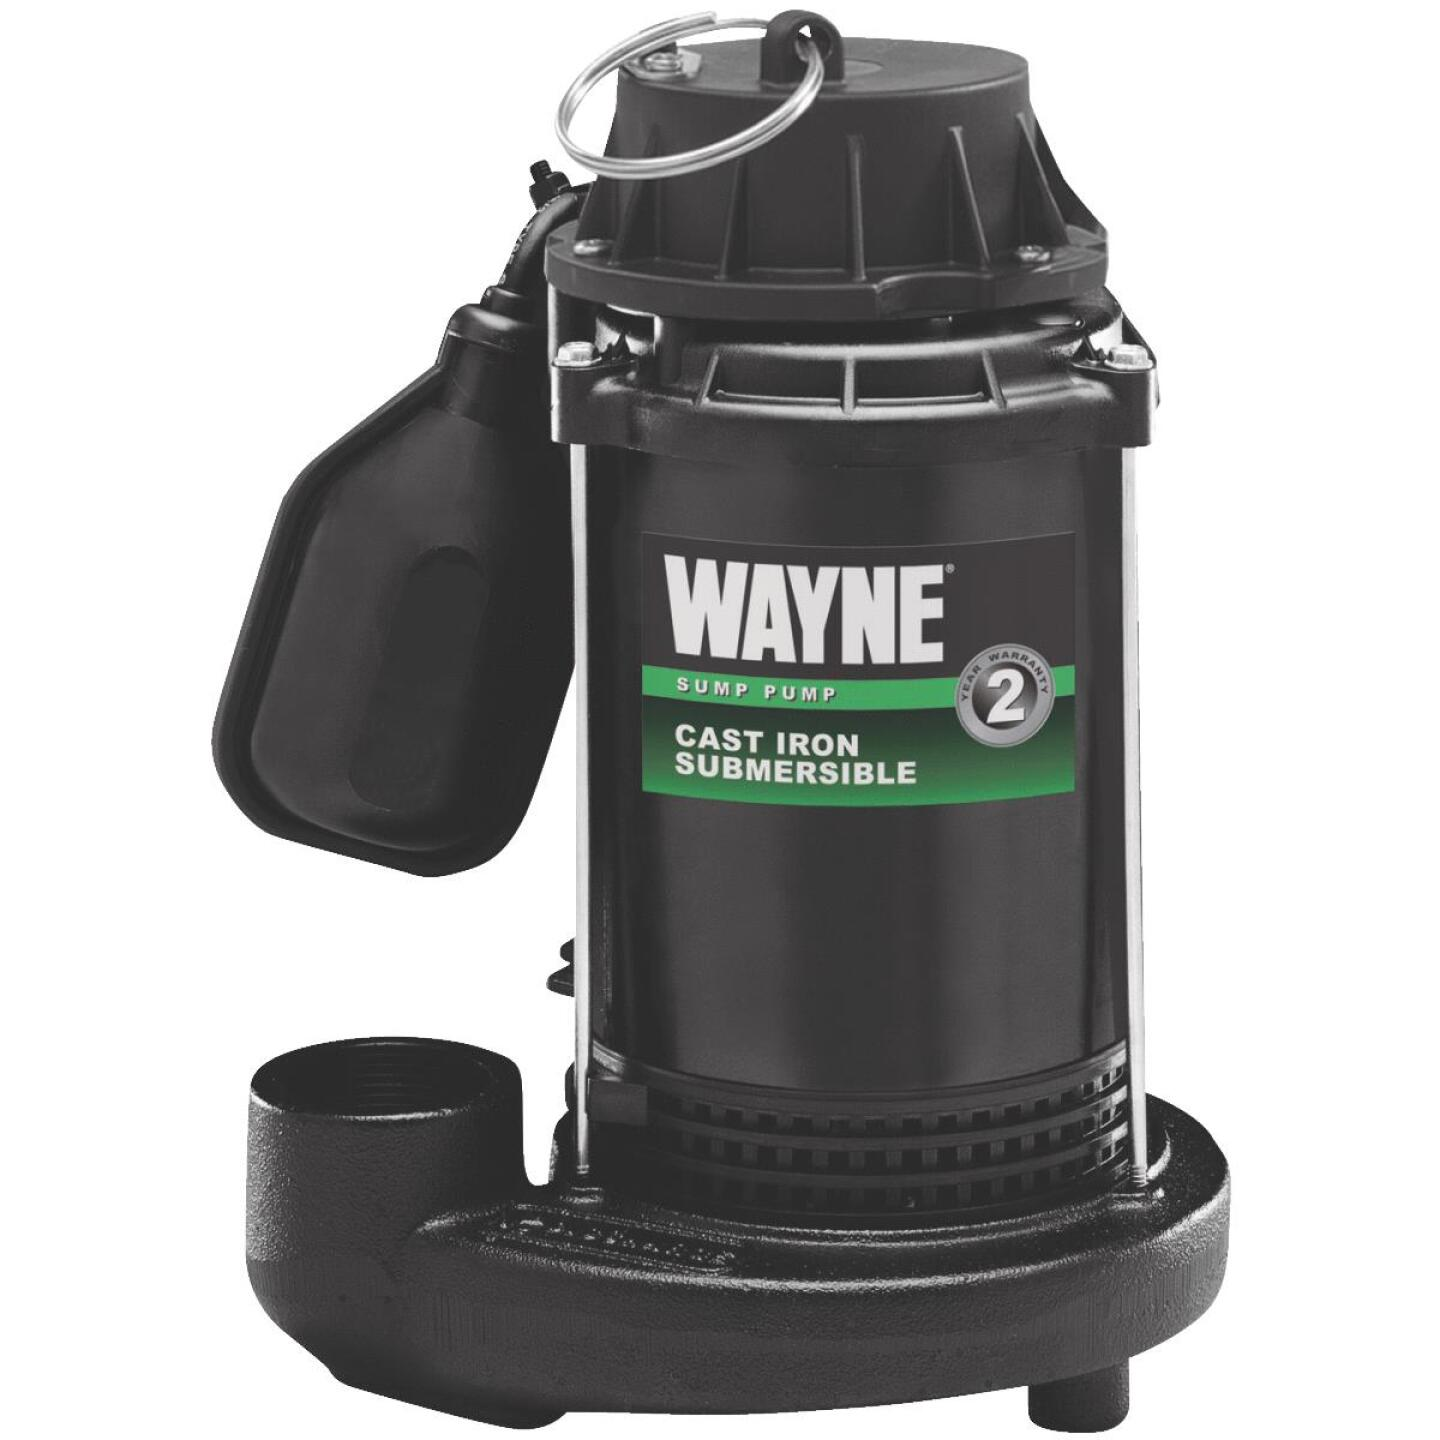 Wayne 1/2 HP 115V Cast-Iron Submersible Sump Pump Image 1